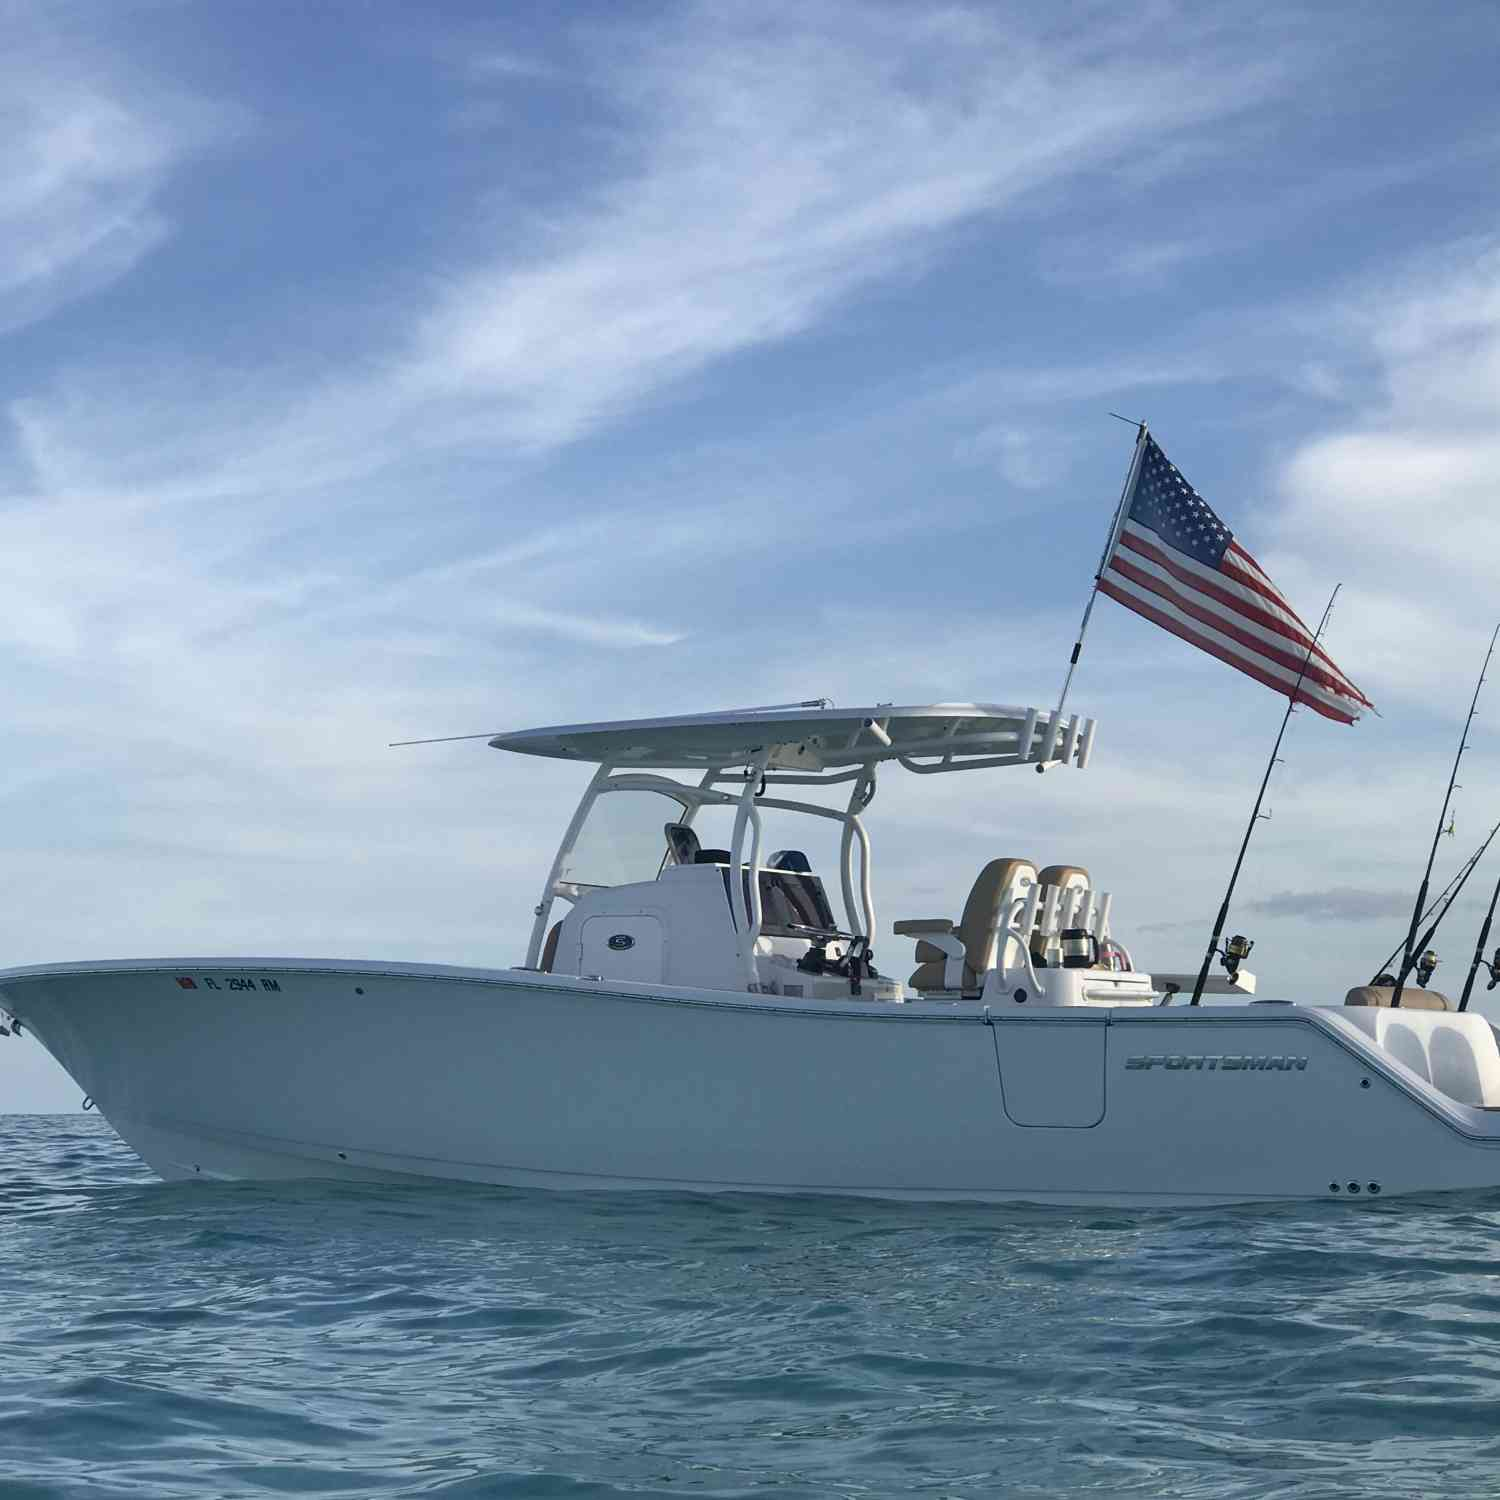 Title: Hanging out in Key Largo - On board their Sportsman Open 312 Center Console - Location: Key Largo, Florida. Participating in the Photo Contest #SportsmanAugust2018